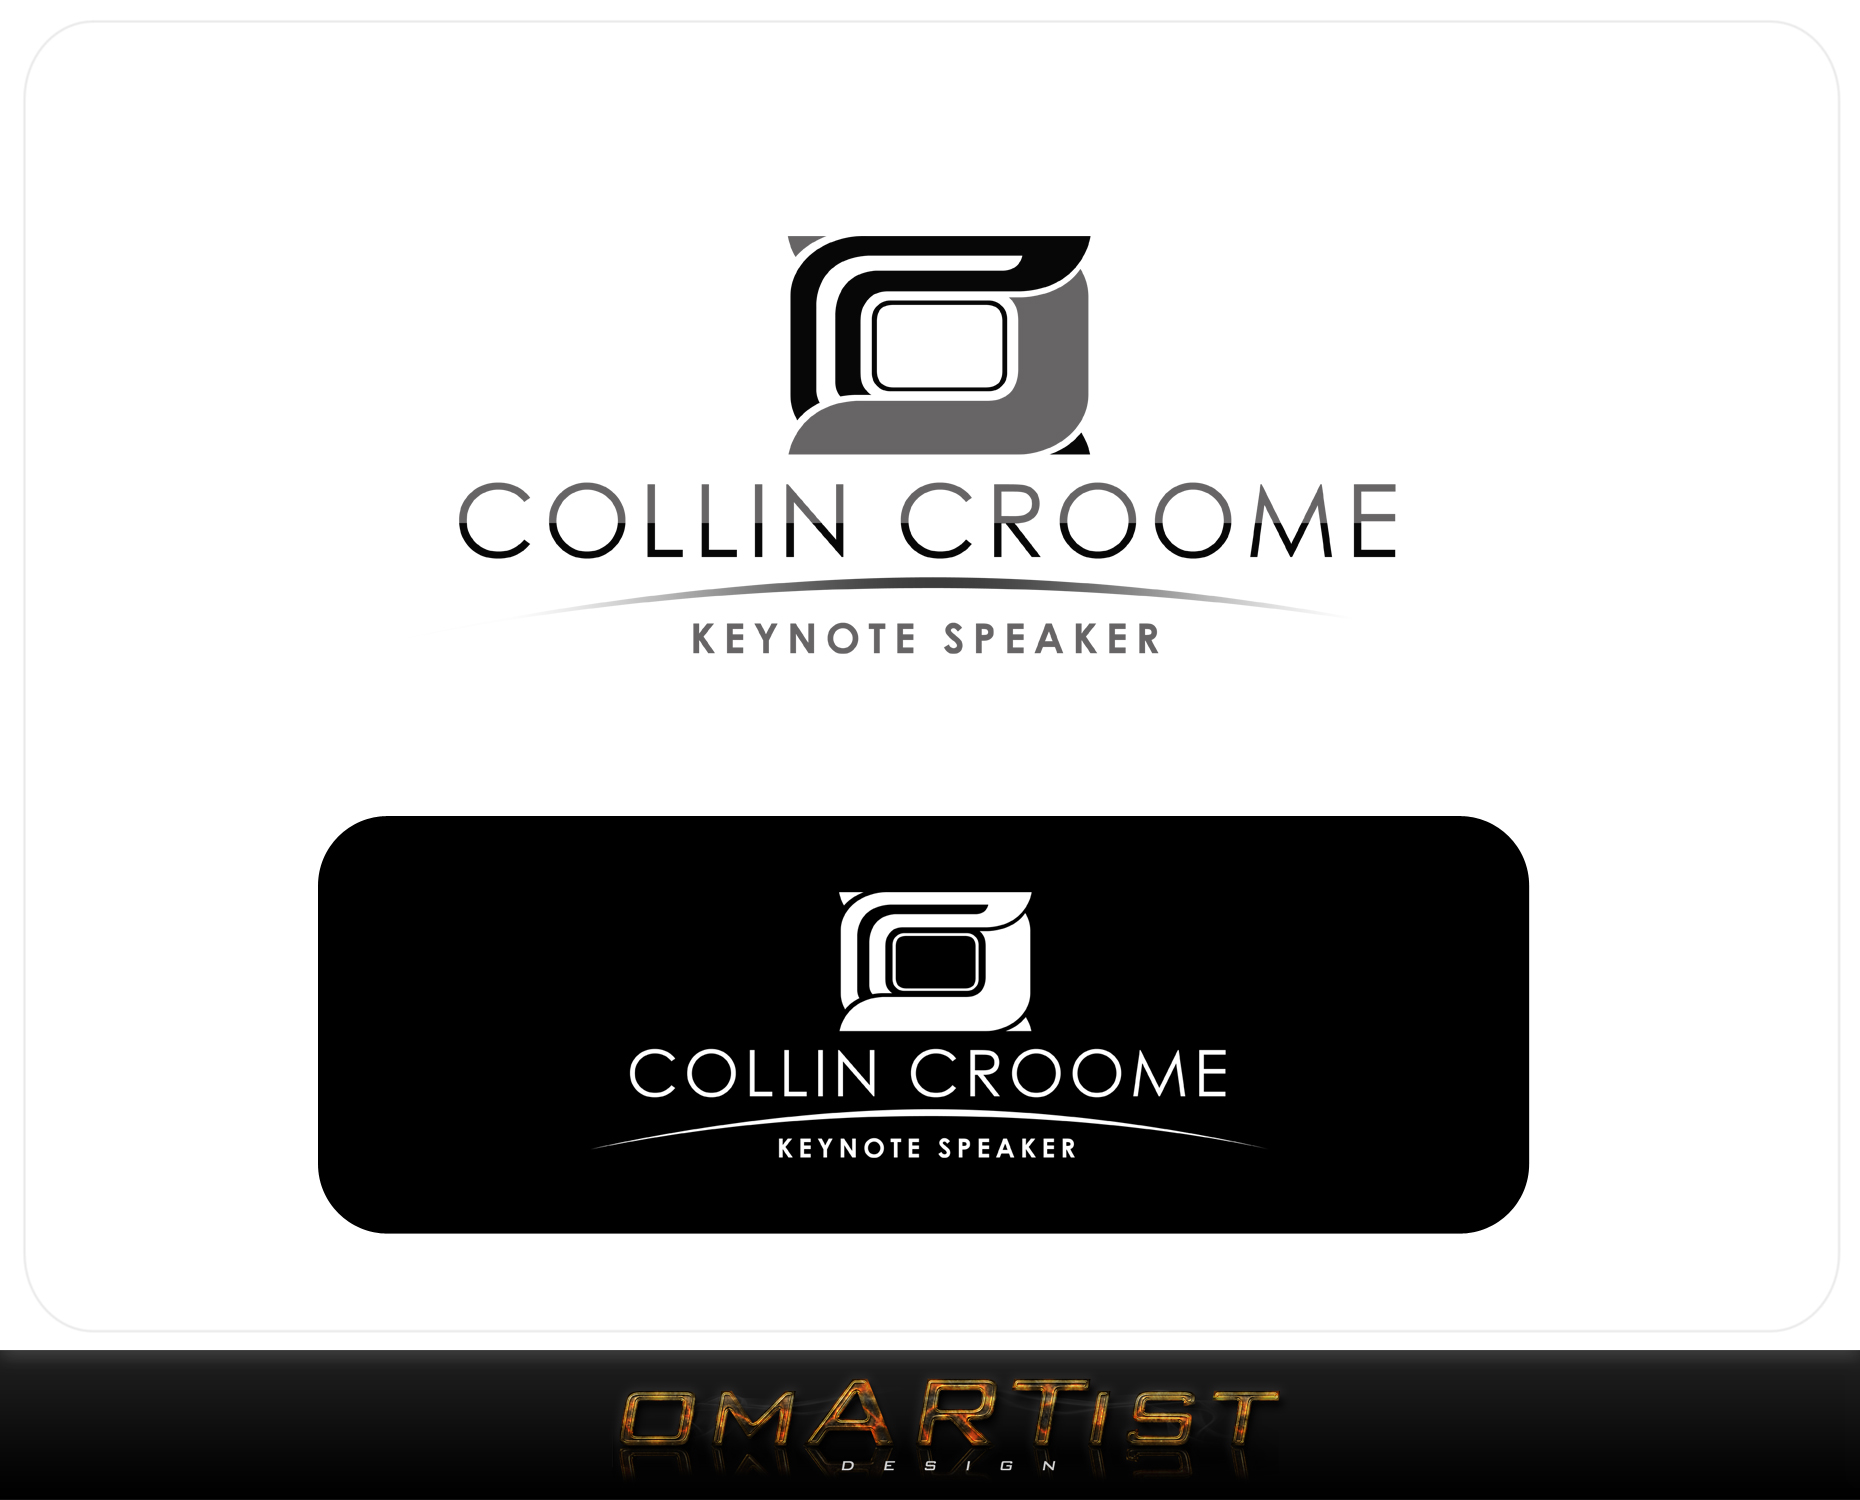 Logo Design by omARTist - Entry No. 258 in the Logo Design Contest Modern Logo Design for Collin Croome.